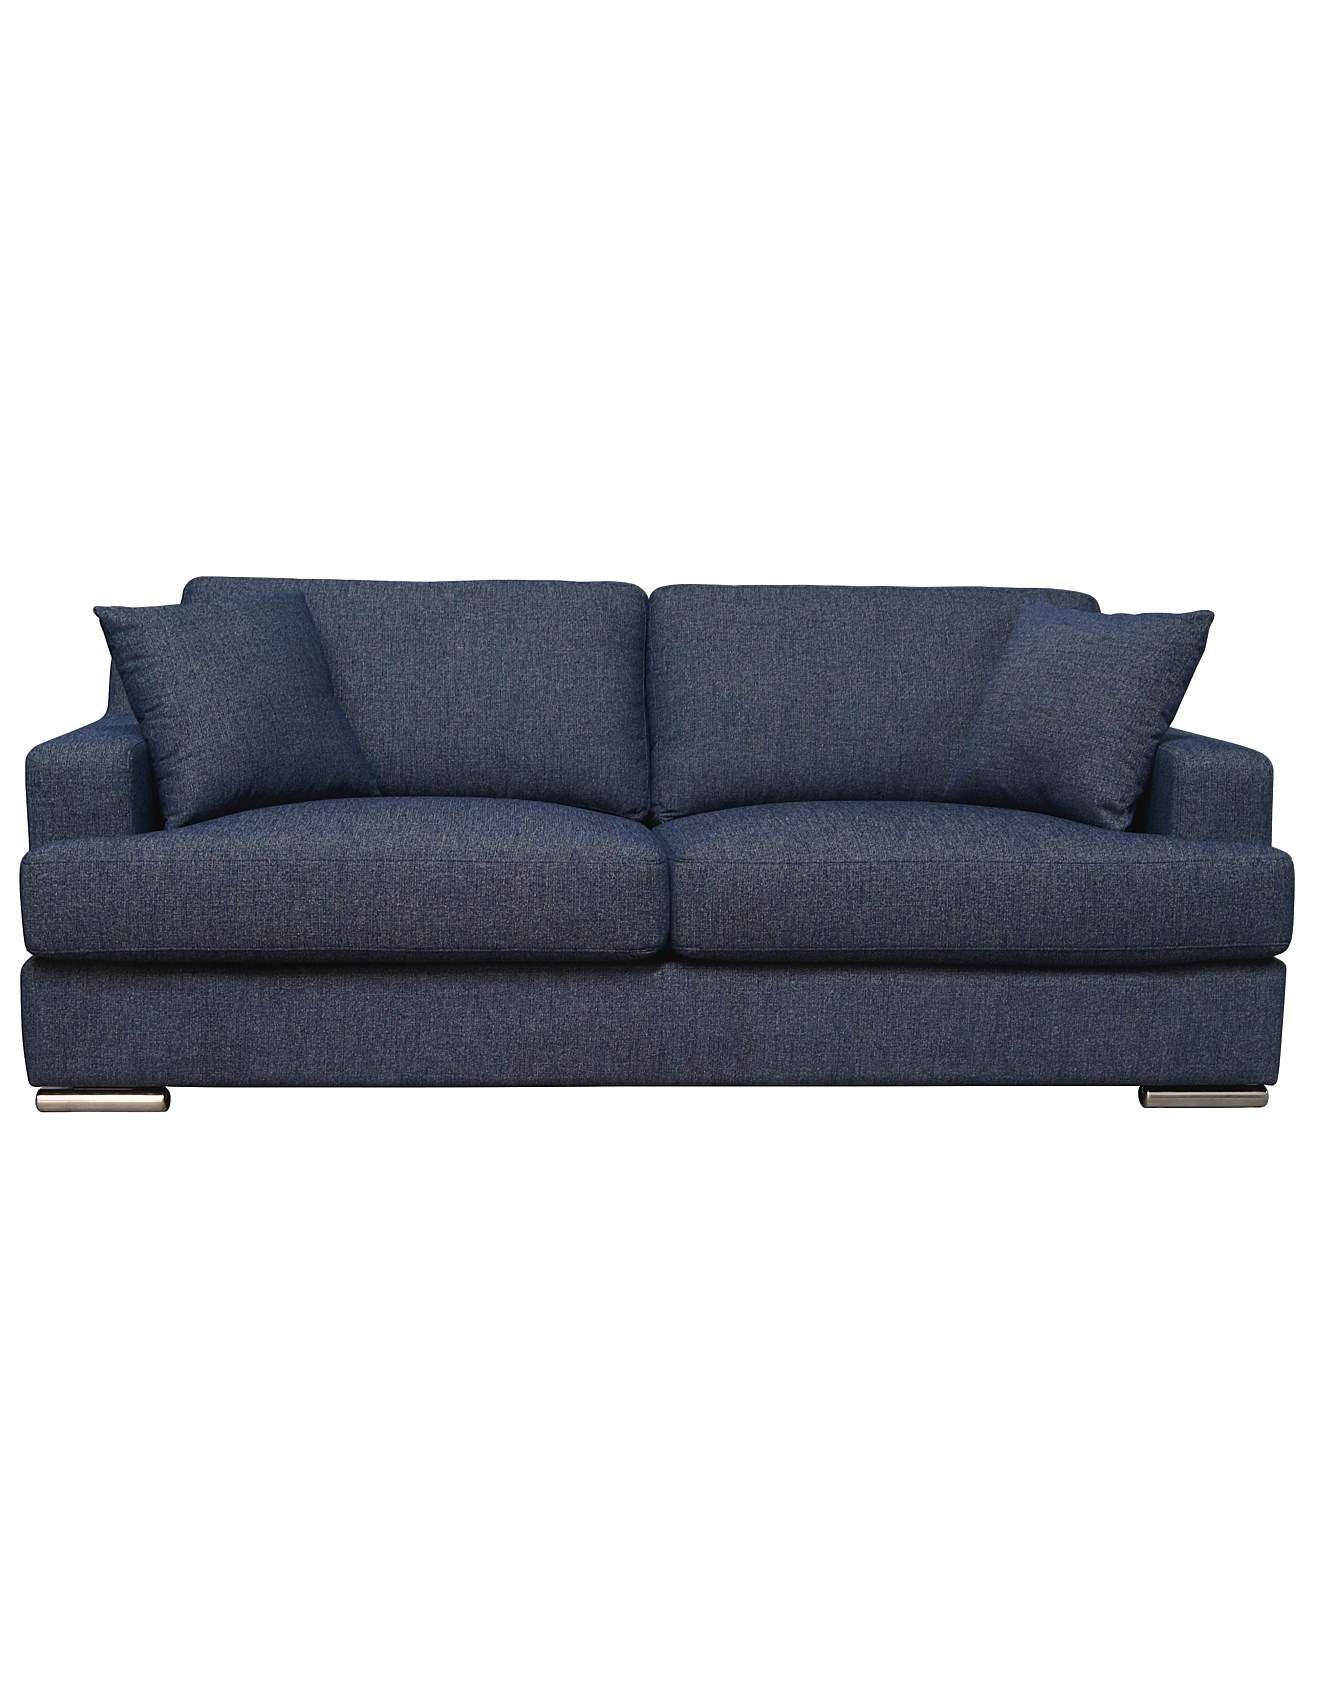 Savannah Double Sofabed Atom Blue Denim Fabric